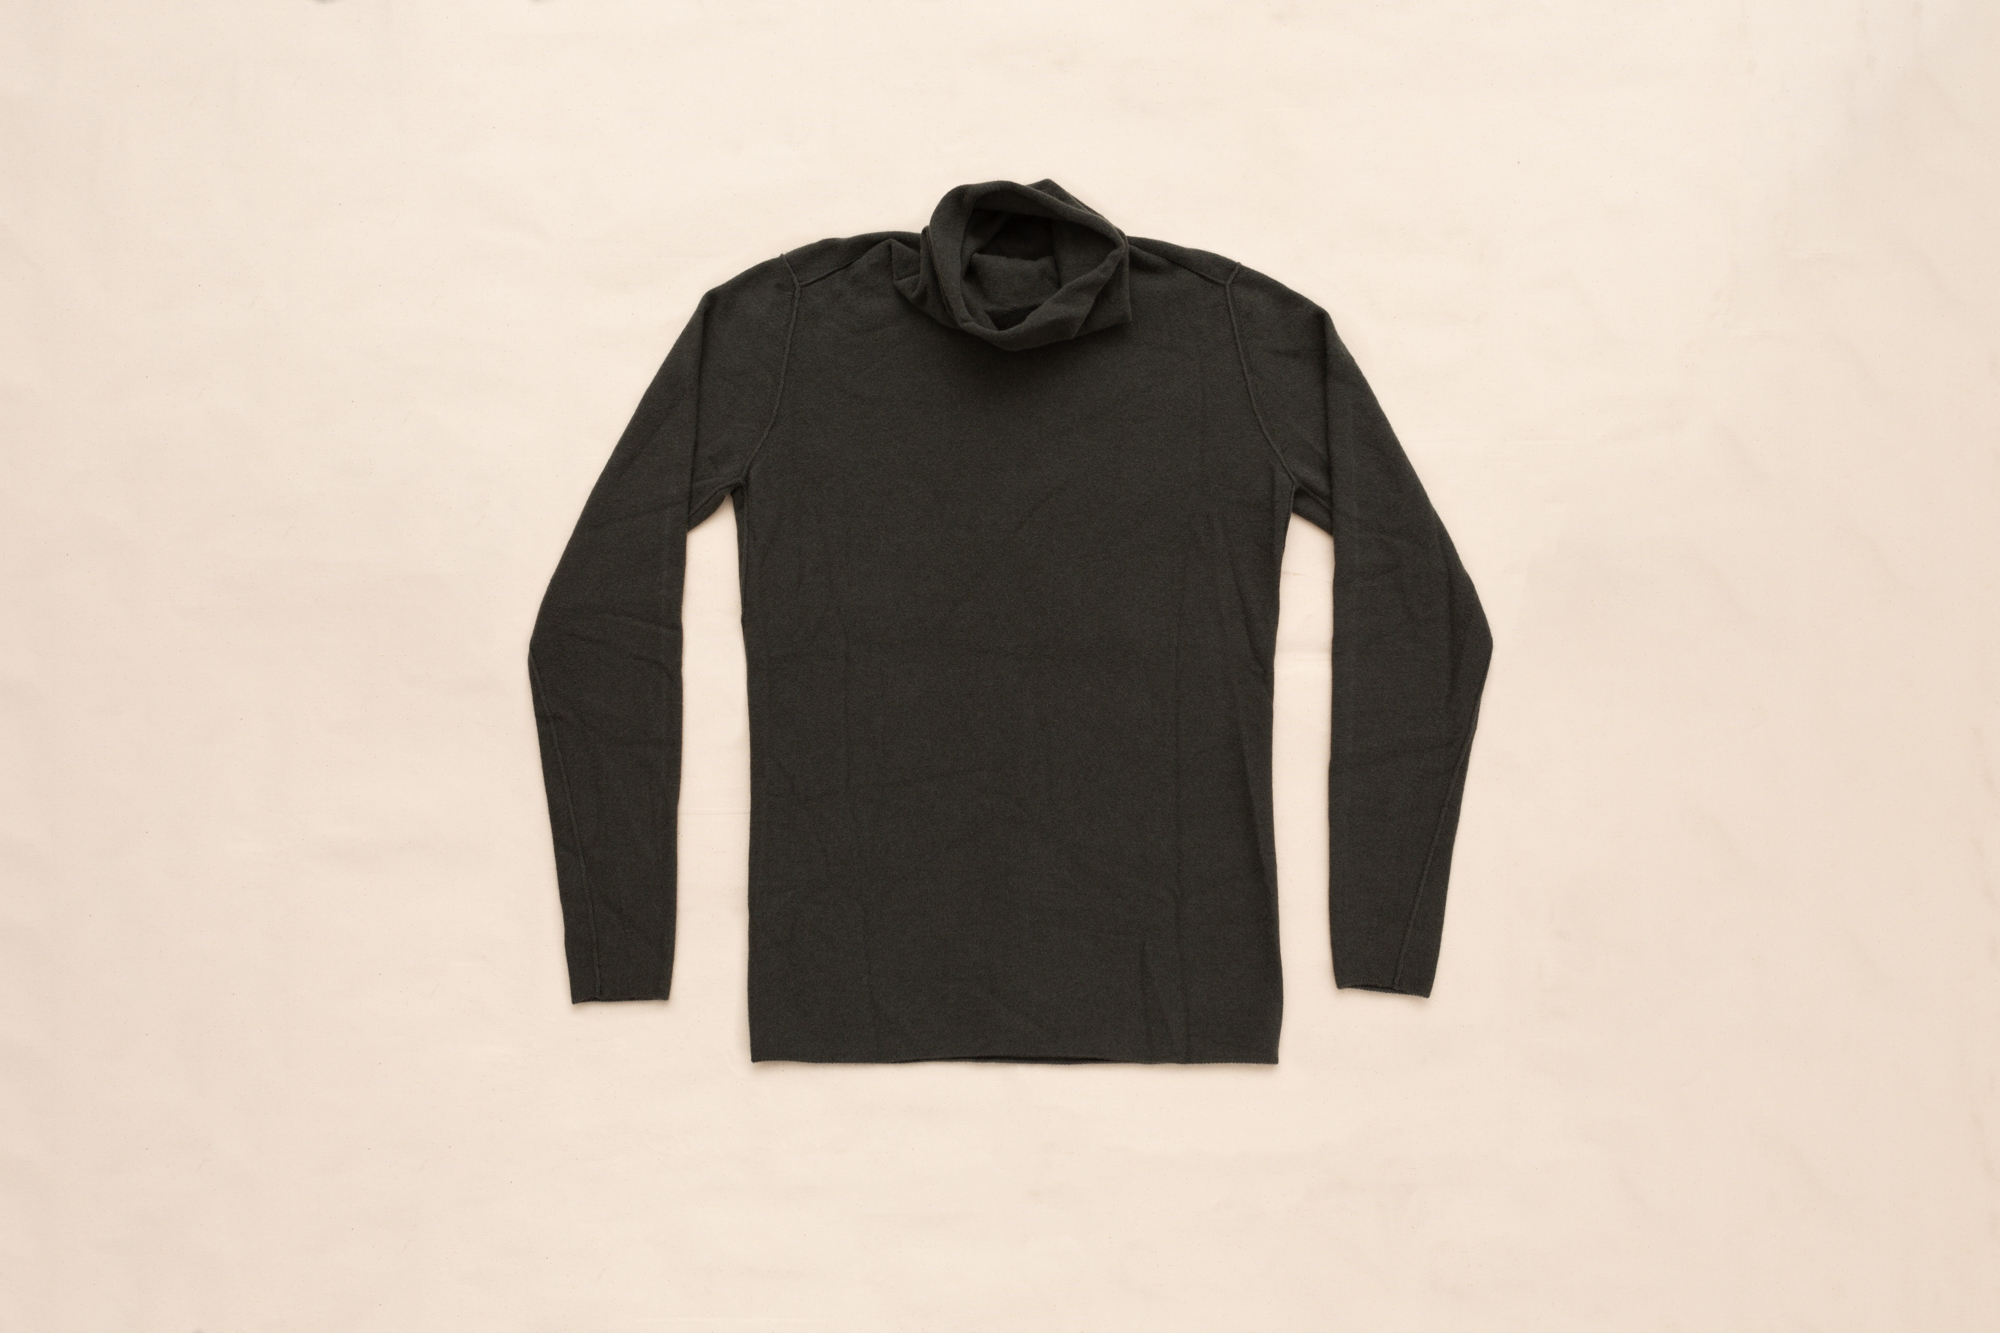 PRIMARY CYLINDRIC NECK SWEATER BY LUCA LAURINI